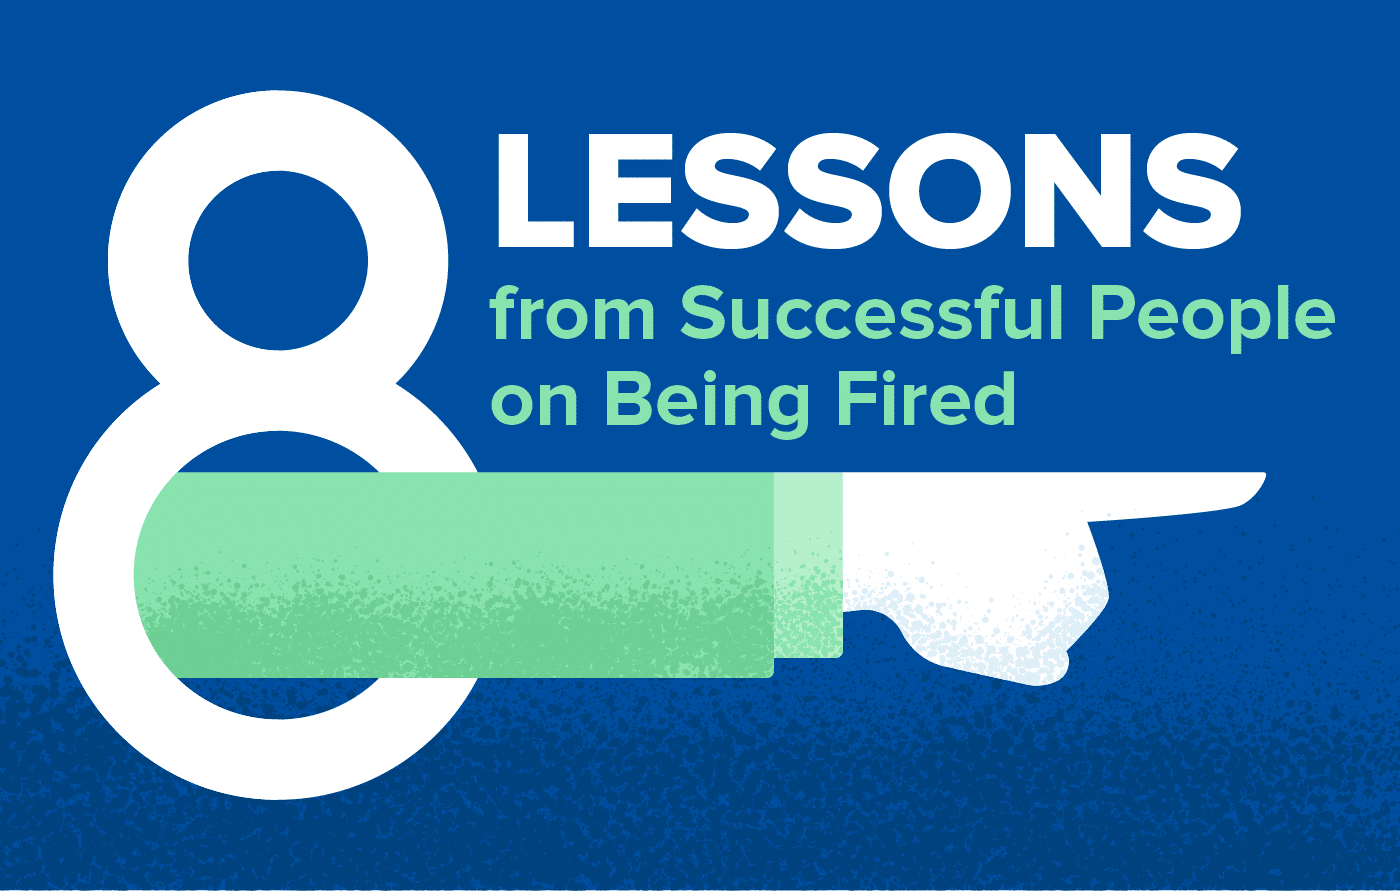 Lessons from Successful People on Being Fired